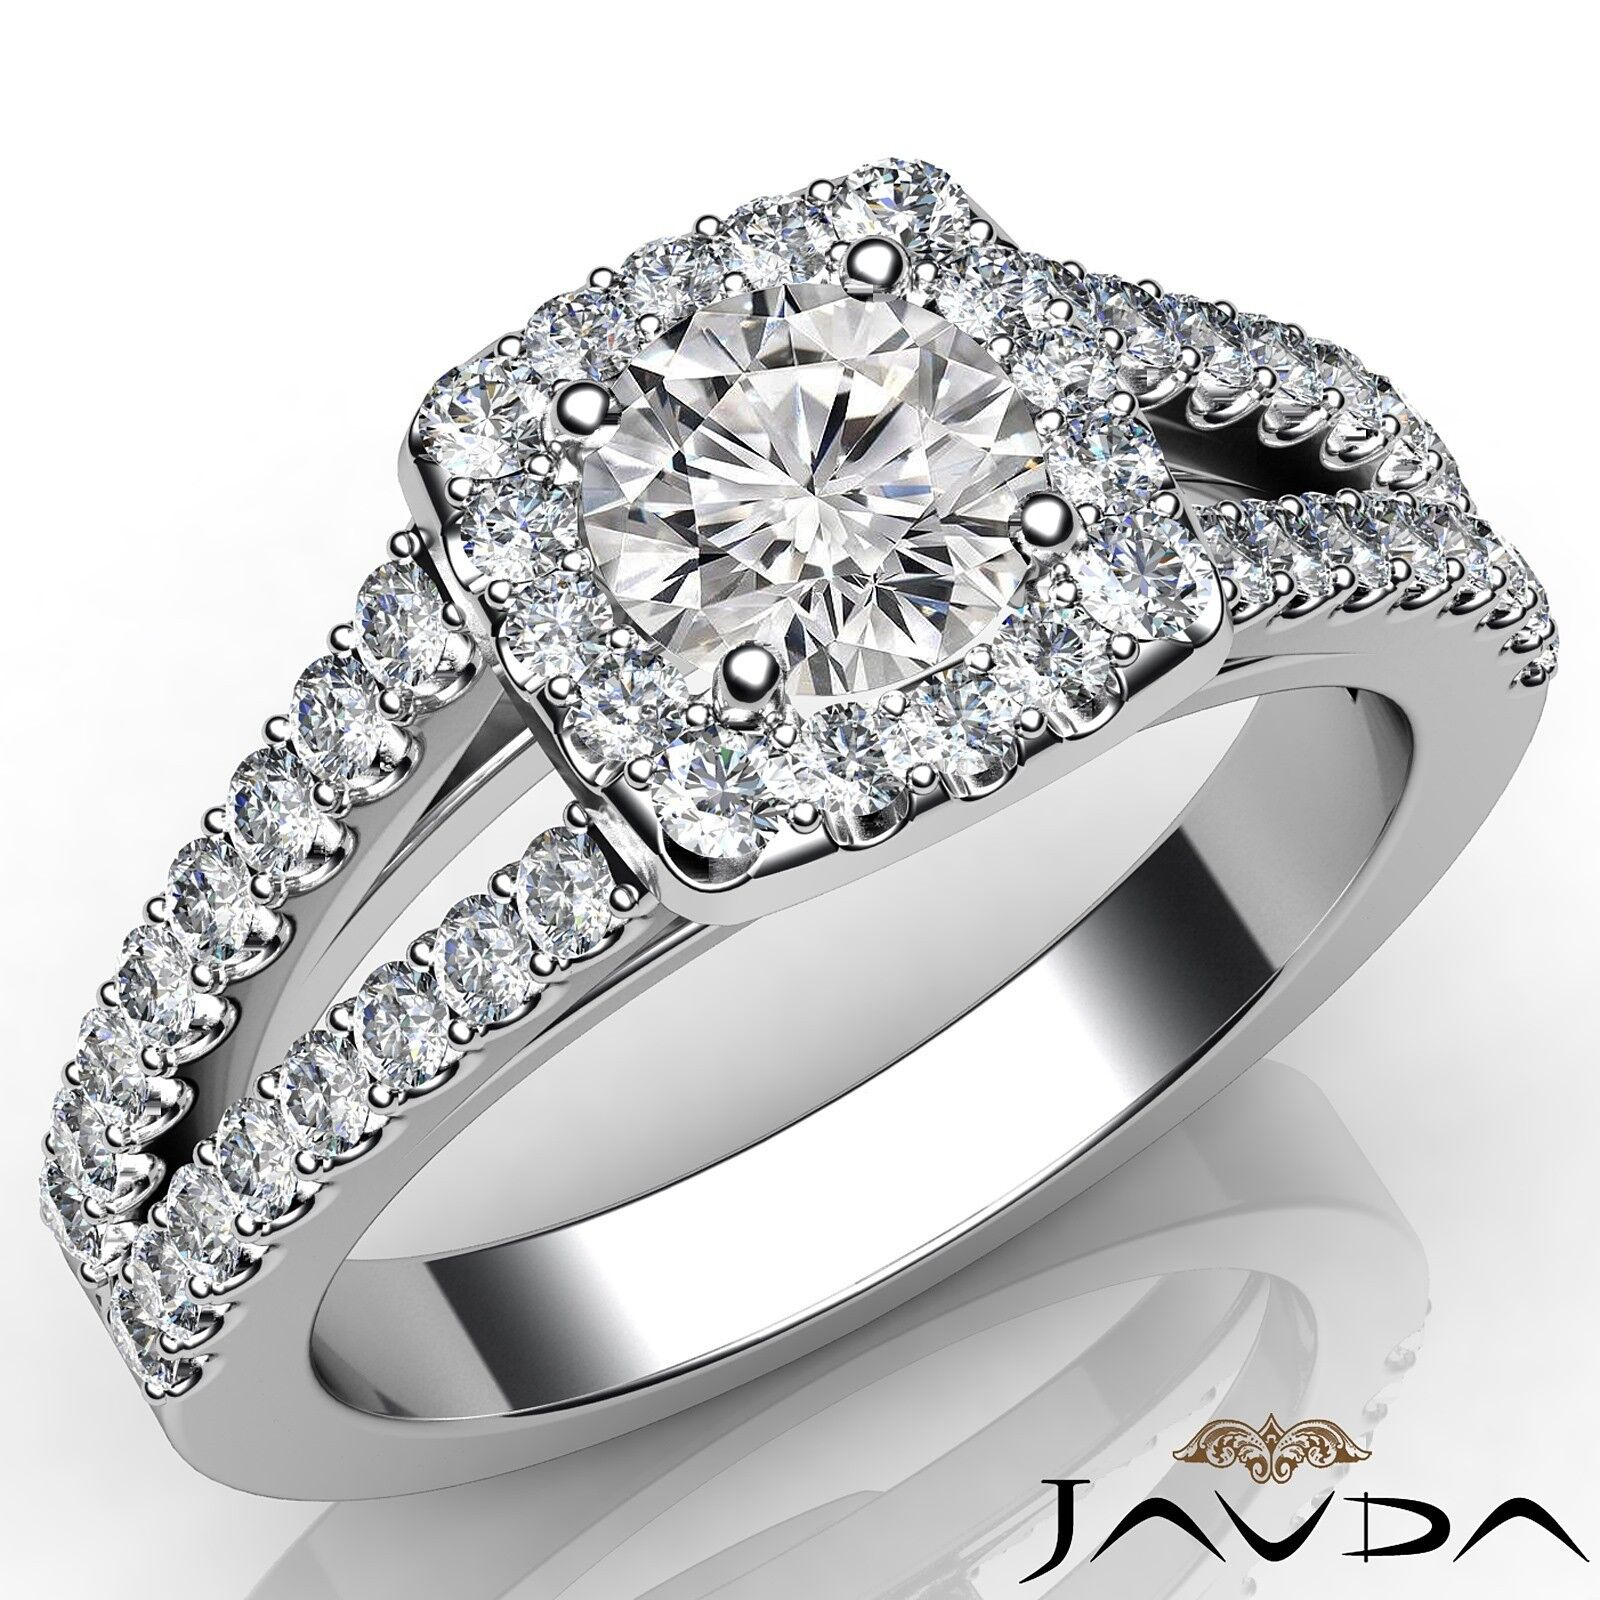 1.15ctw Split Shank Round Diamond Engagement Ring GIA E-VVS2 White Gold Women